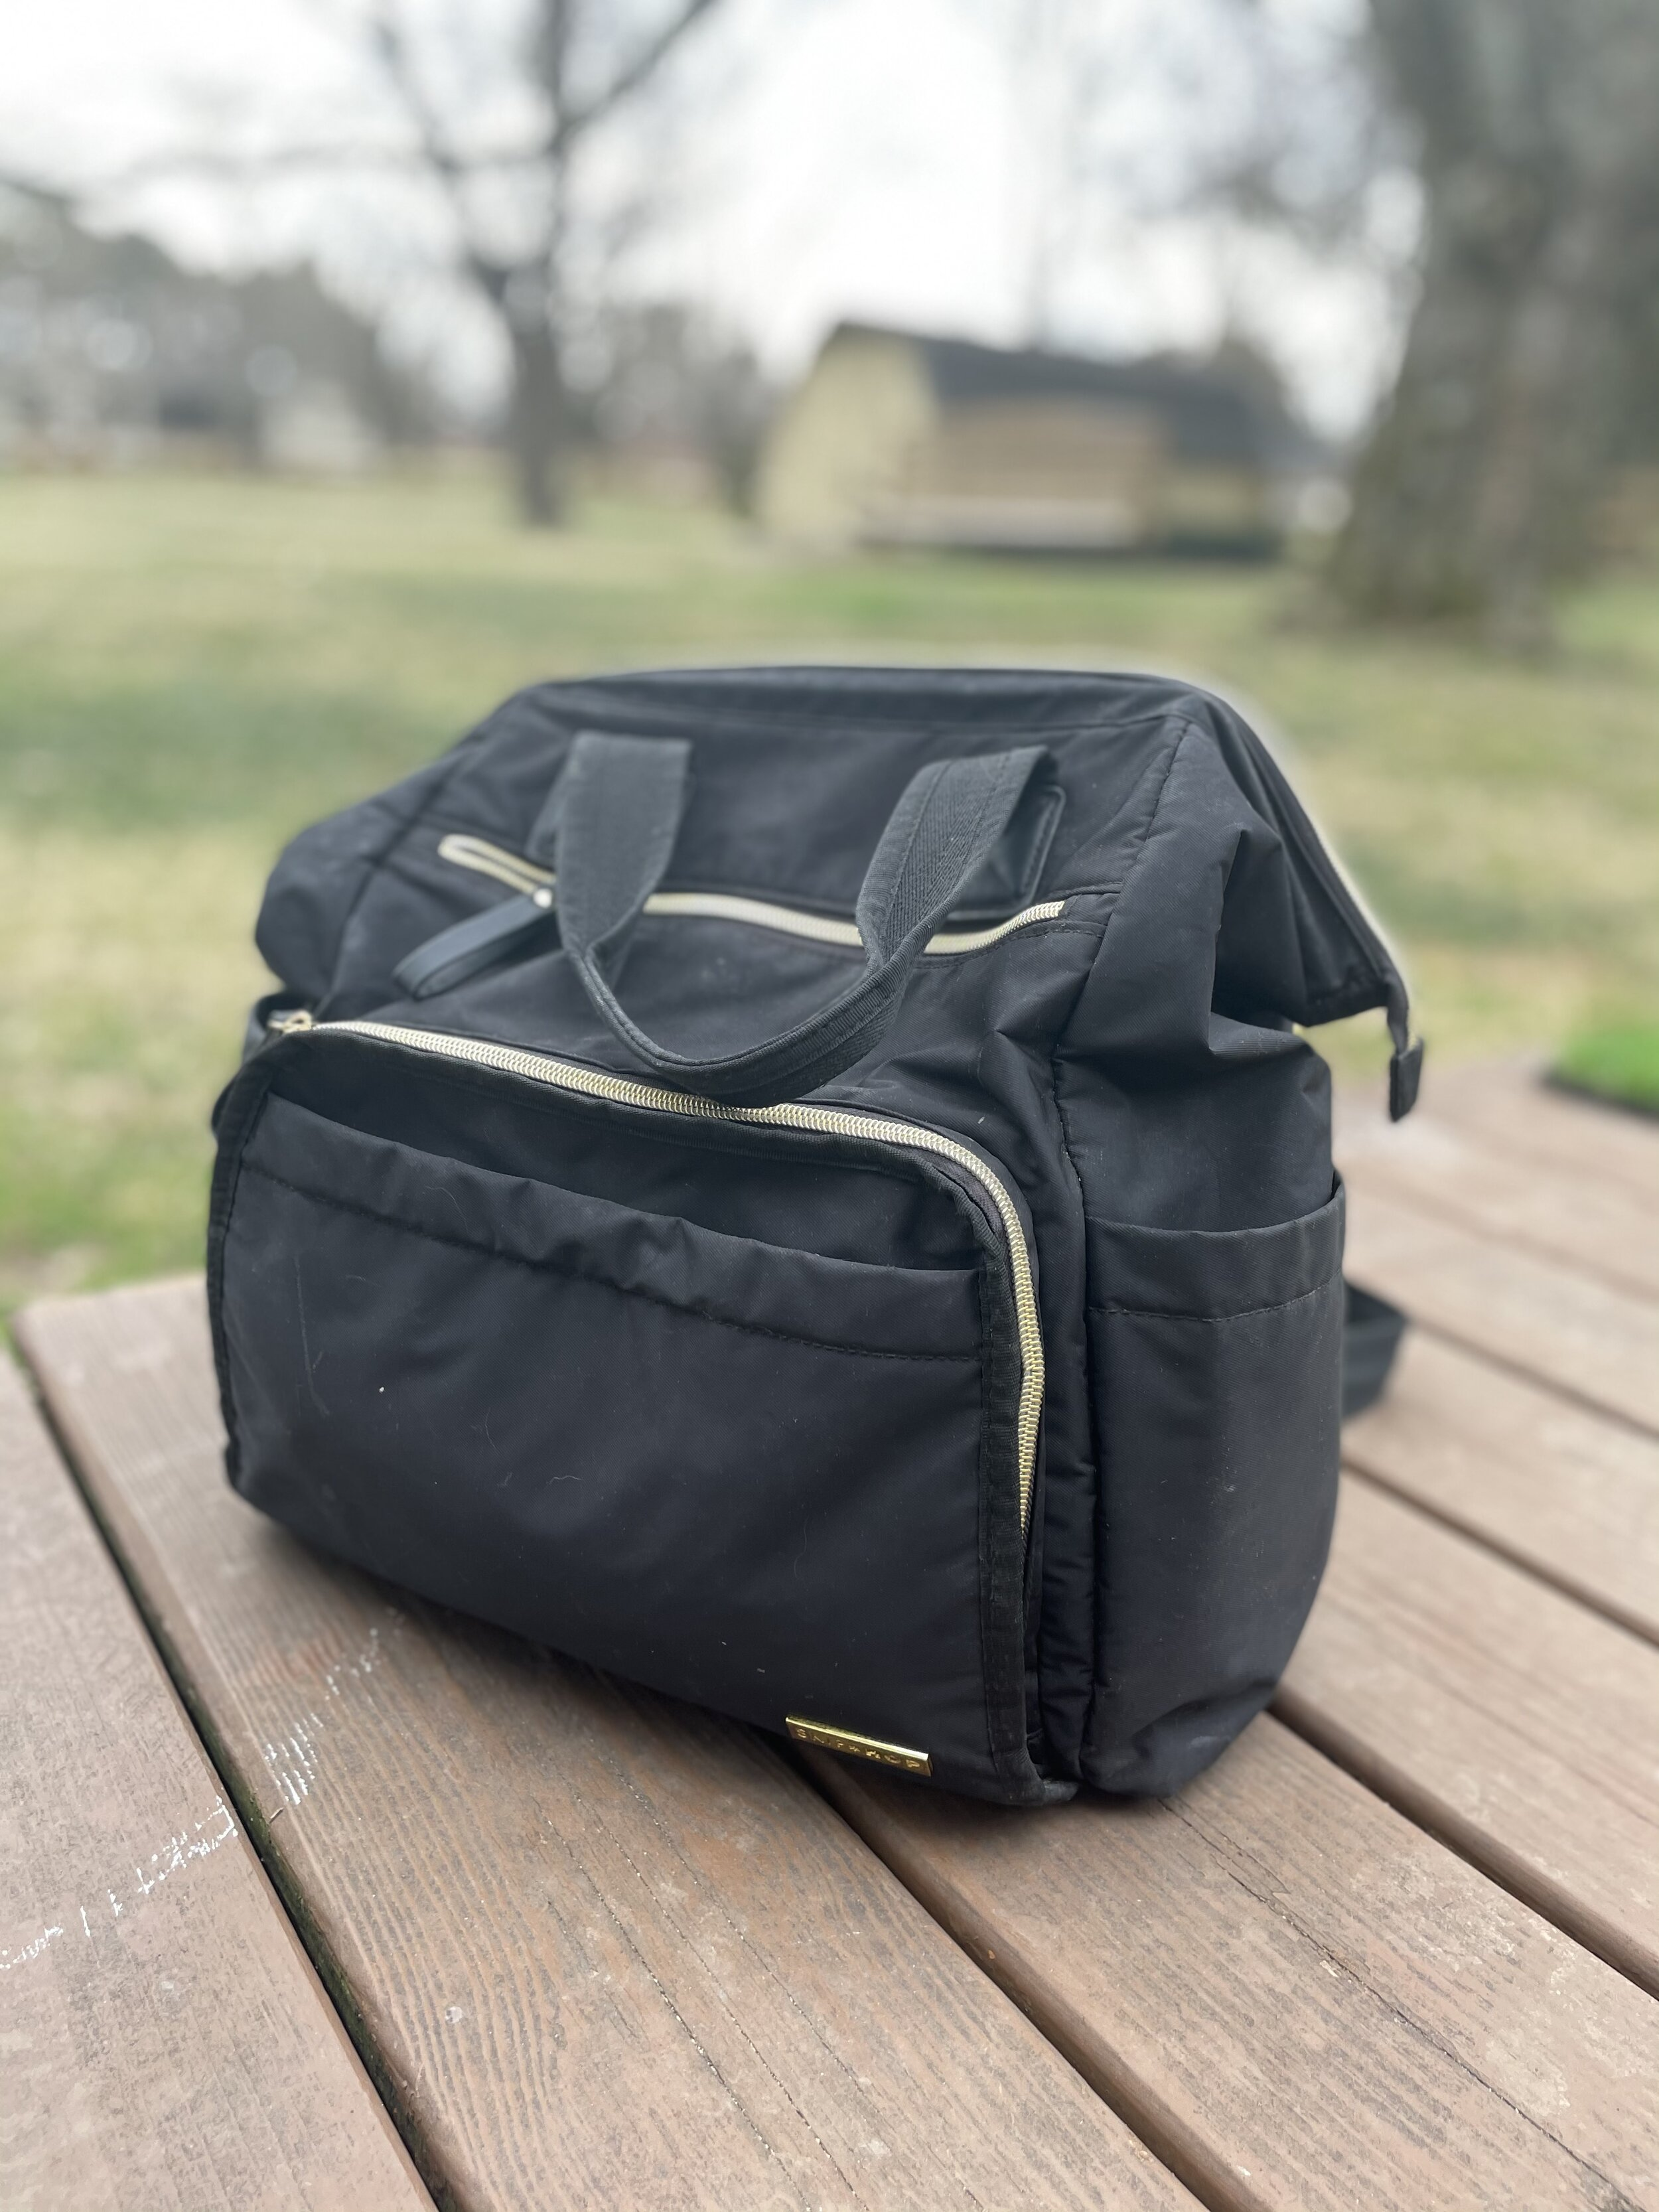 - This diaper bag has been a huge win. We still take it everywhere we go and it has held up for over 2 years!